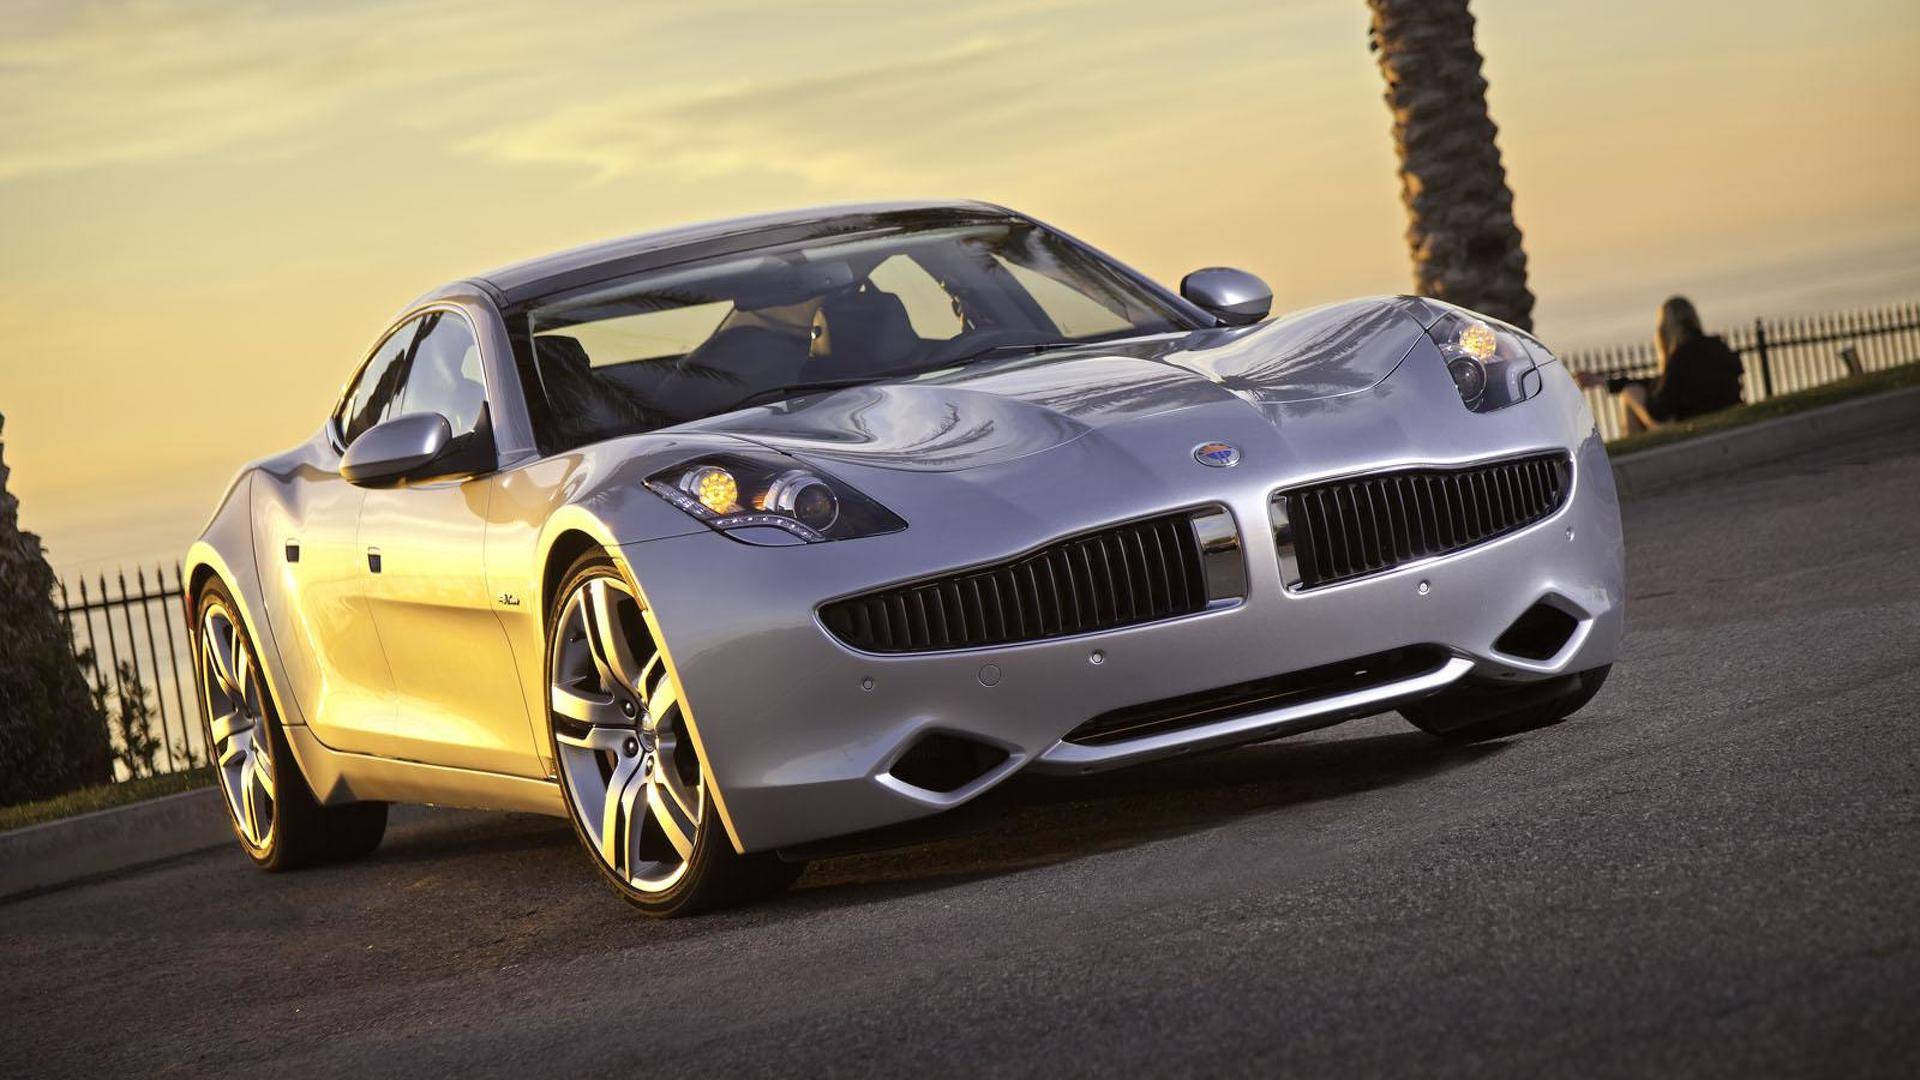 Fisker bought by an Asian investment group - report